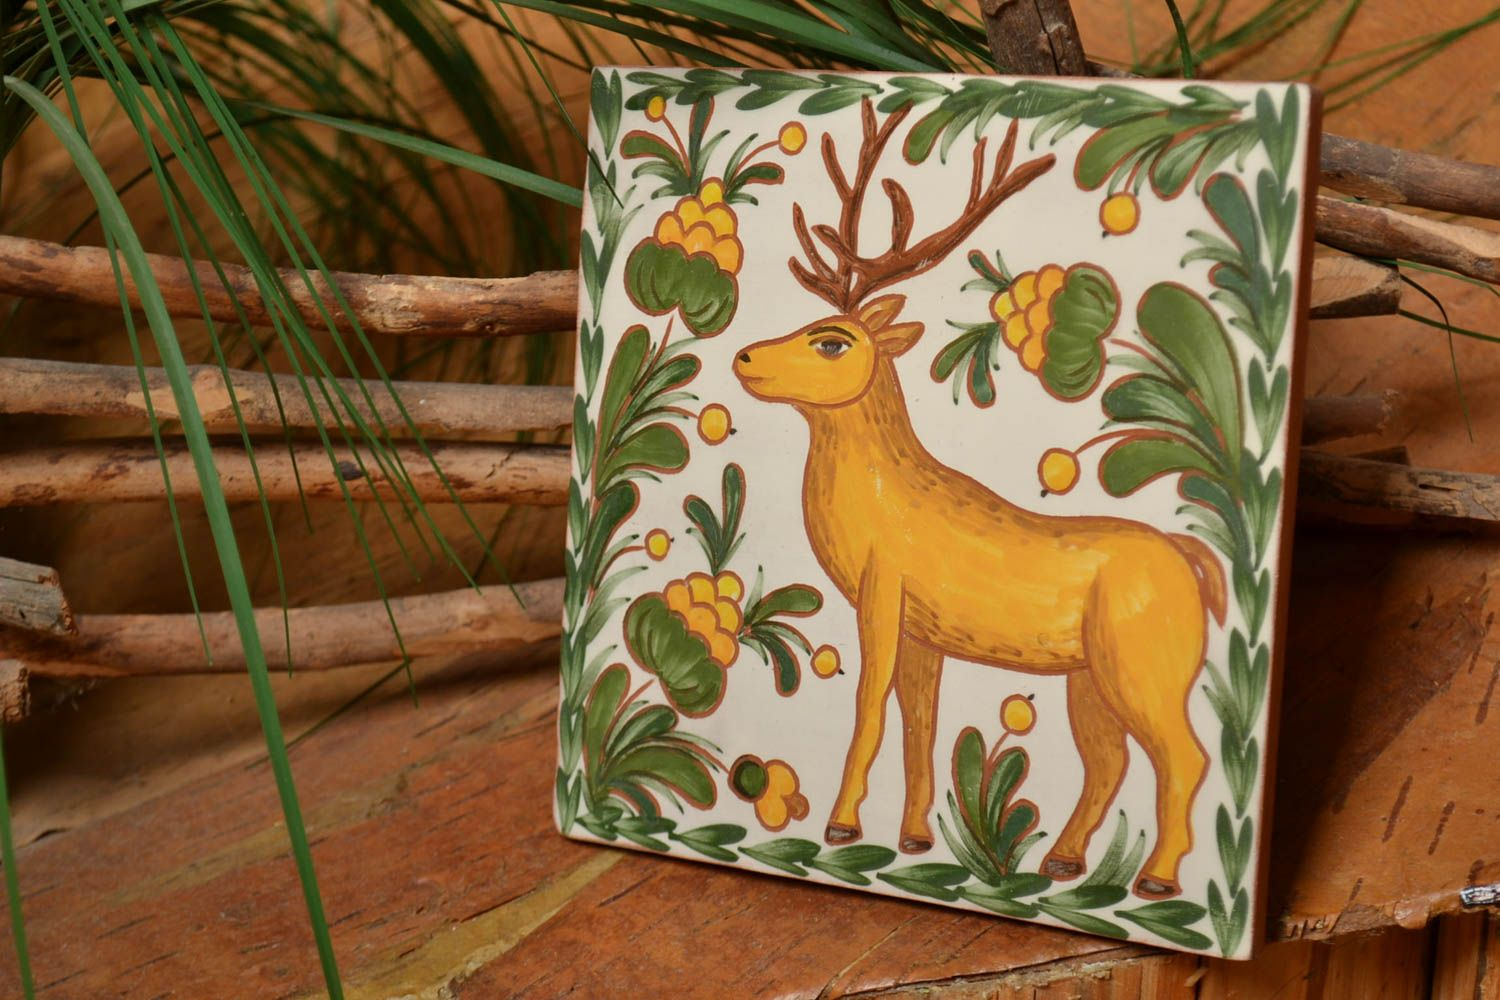 Madeheart ceramic decorative tile painted with engobes handmade decorative handmade tiles ceramic decorative tile painted with engobes handmade wall panel with deer madeheart dailygadgetfo Image collections